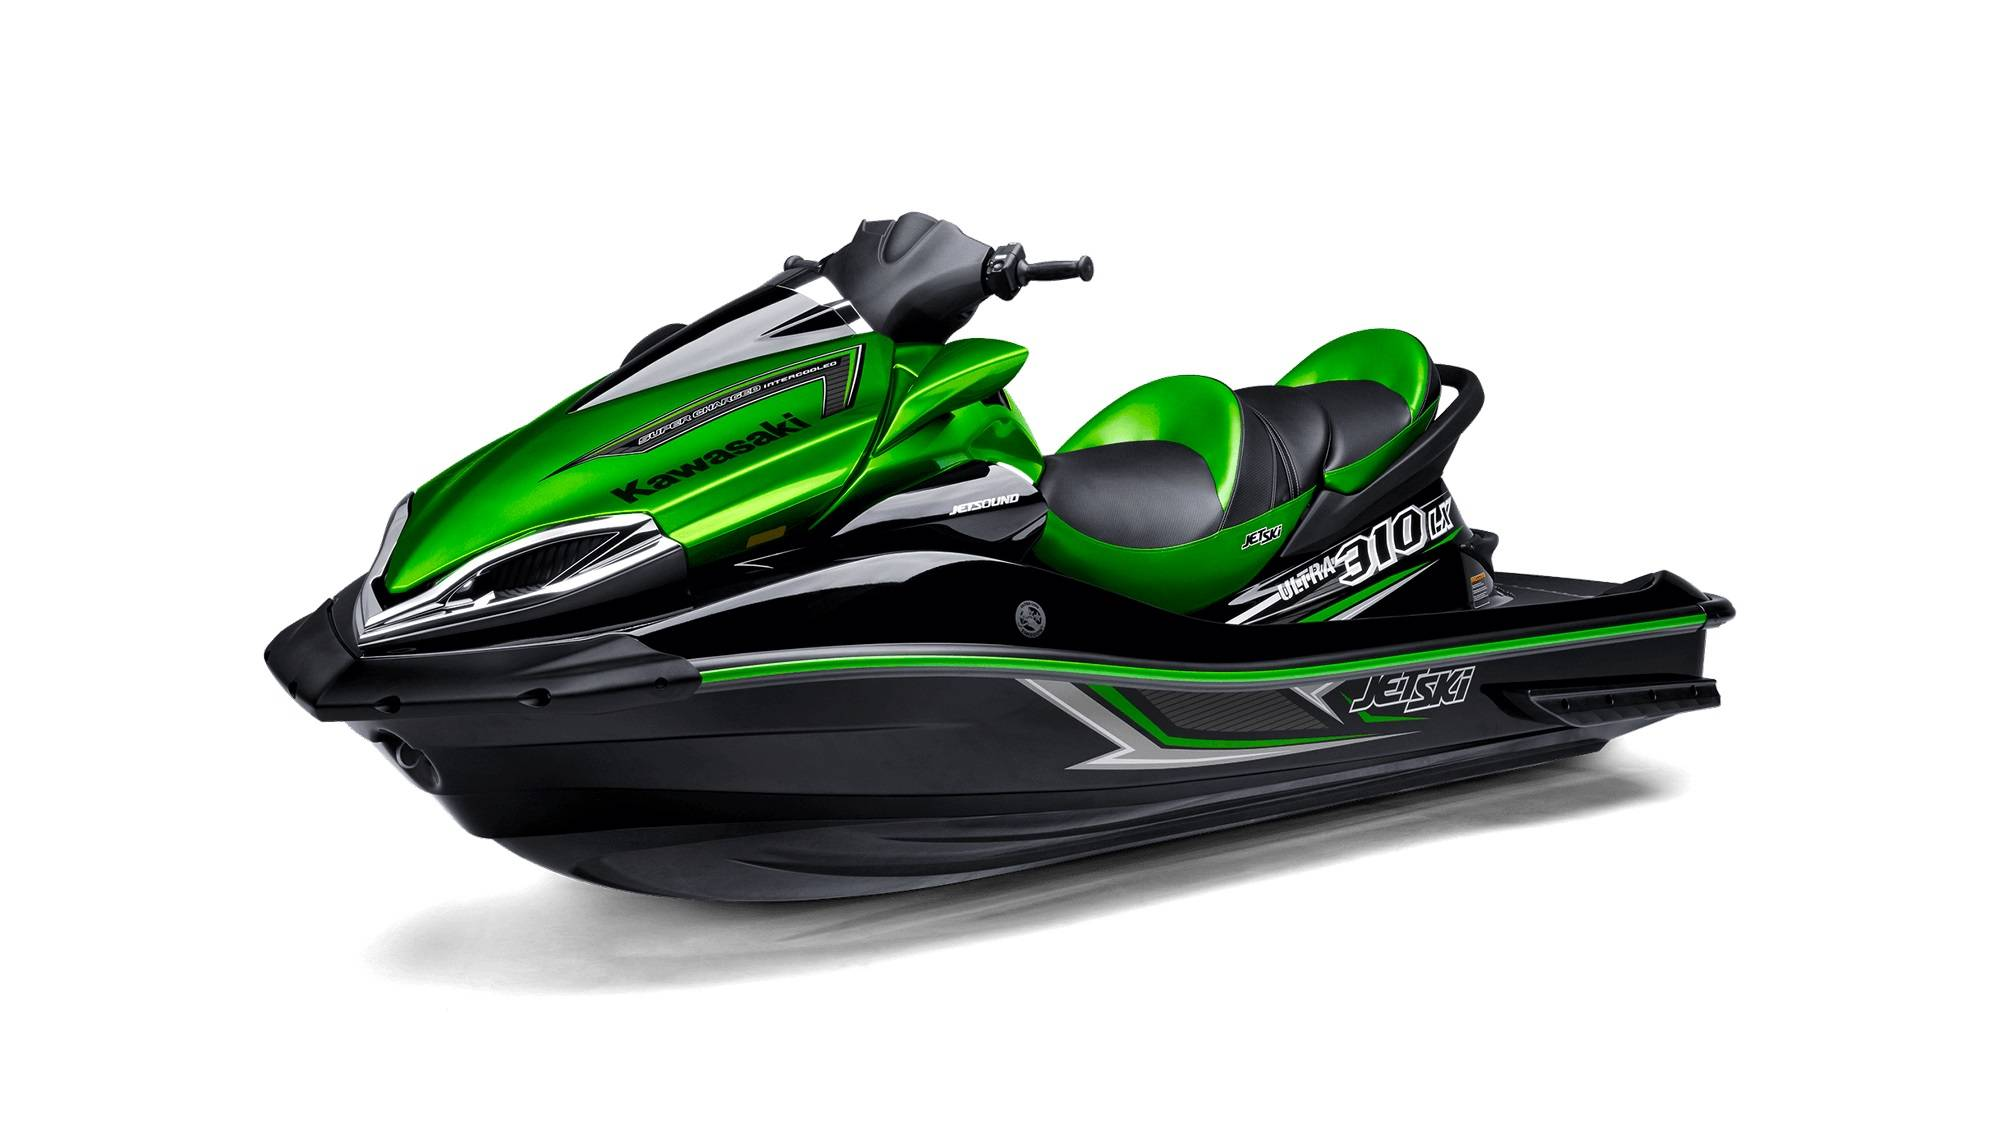 Personal Watercraft ULTRA 310LX - 2015